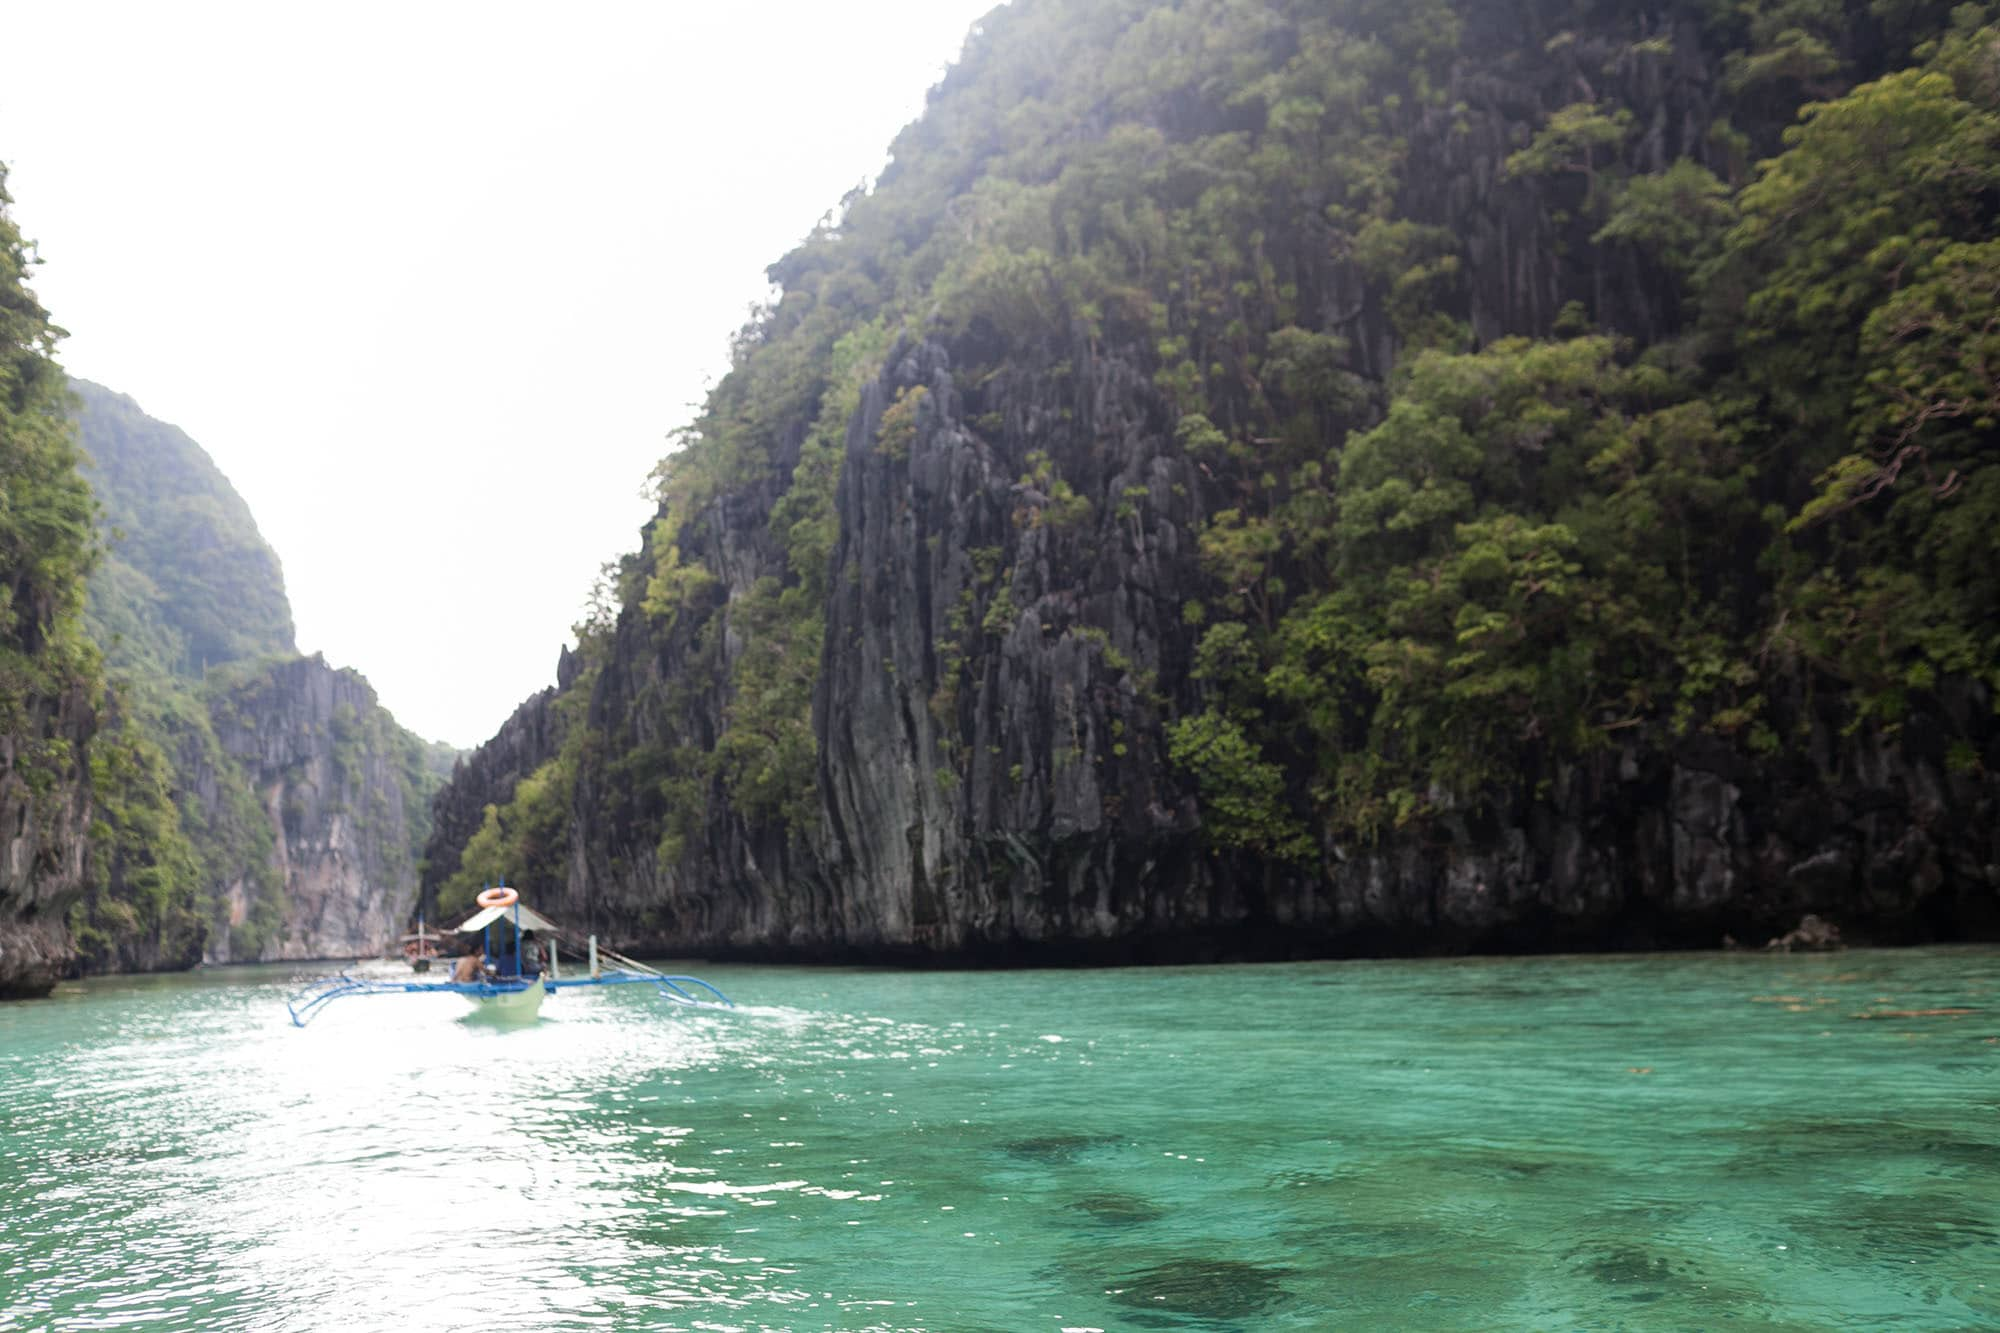 Palawan Island hopping tour A in El Nido, Philippines